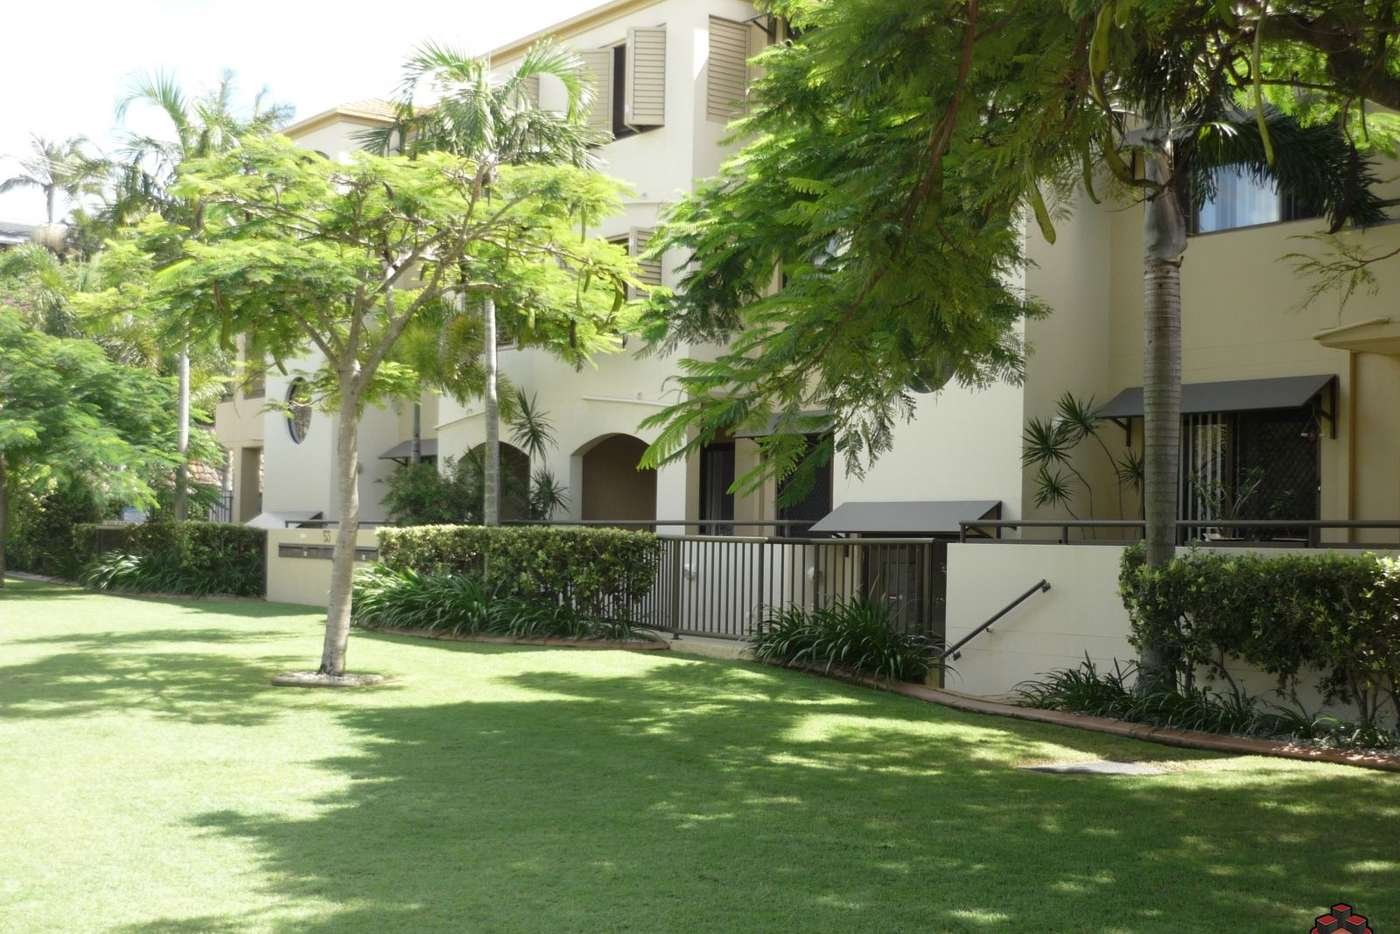 Main view of Homely unit listing, ID:3871902/53 7/53 Stapylton St, Coolangatta QLD 4225